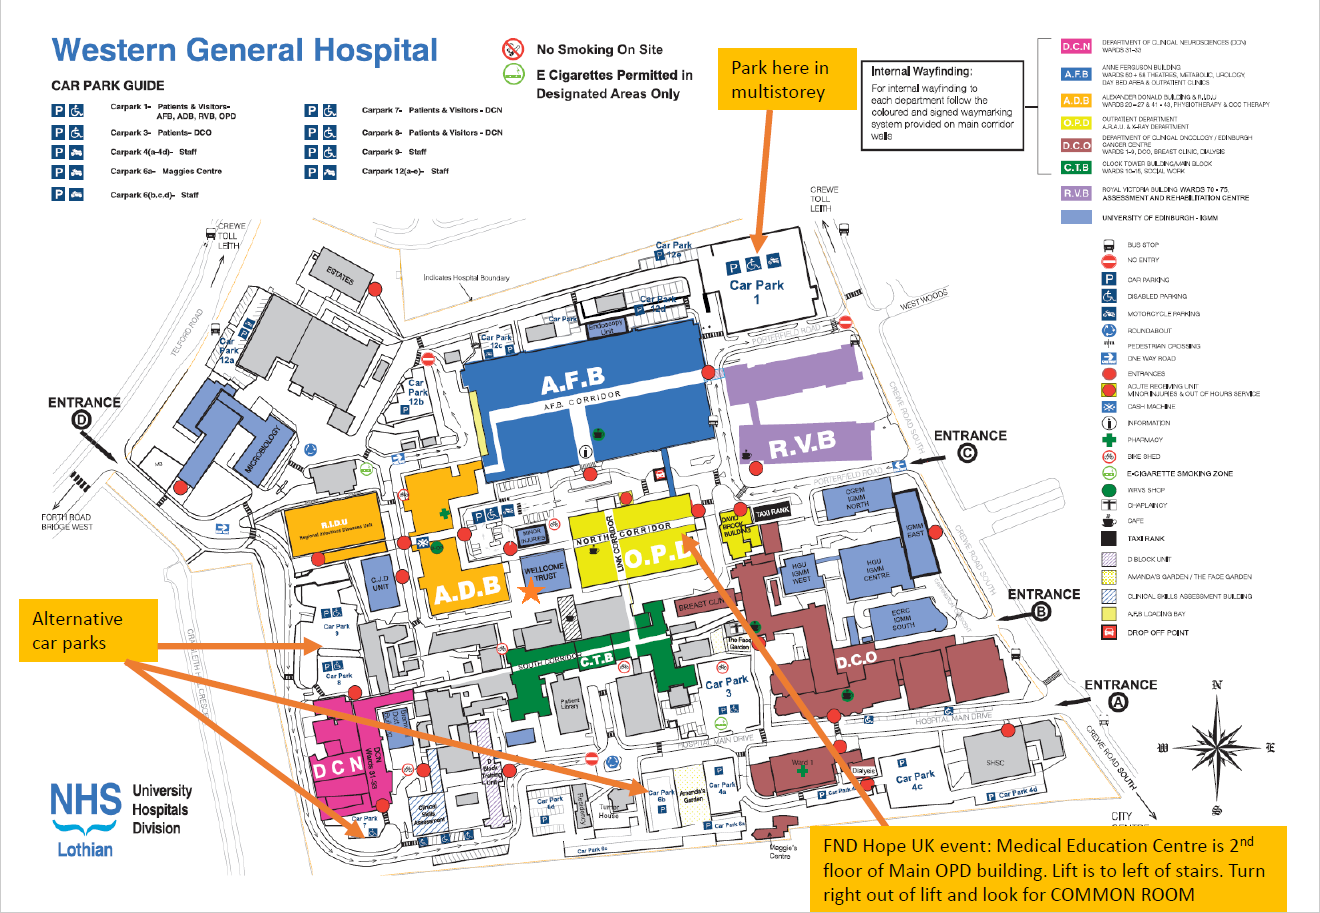 Map of Hospital